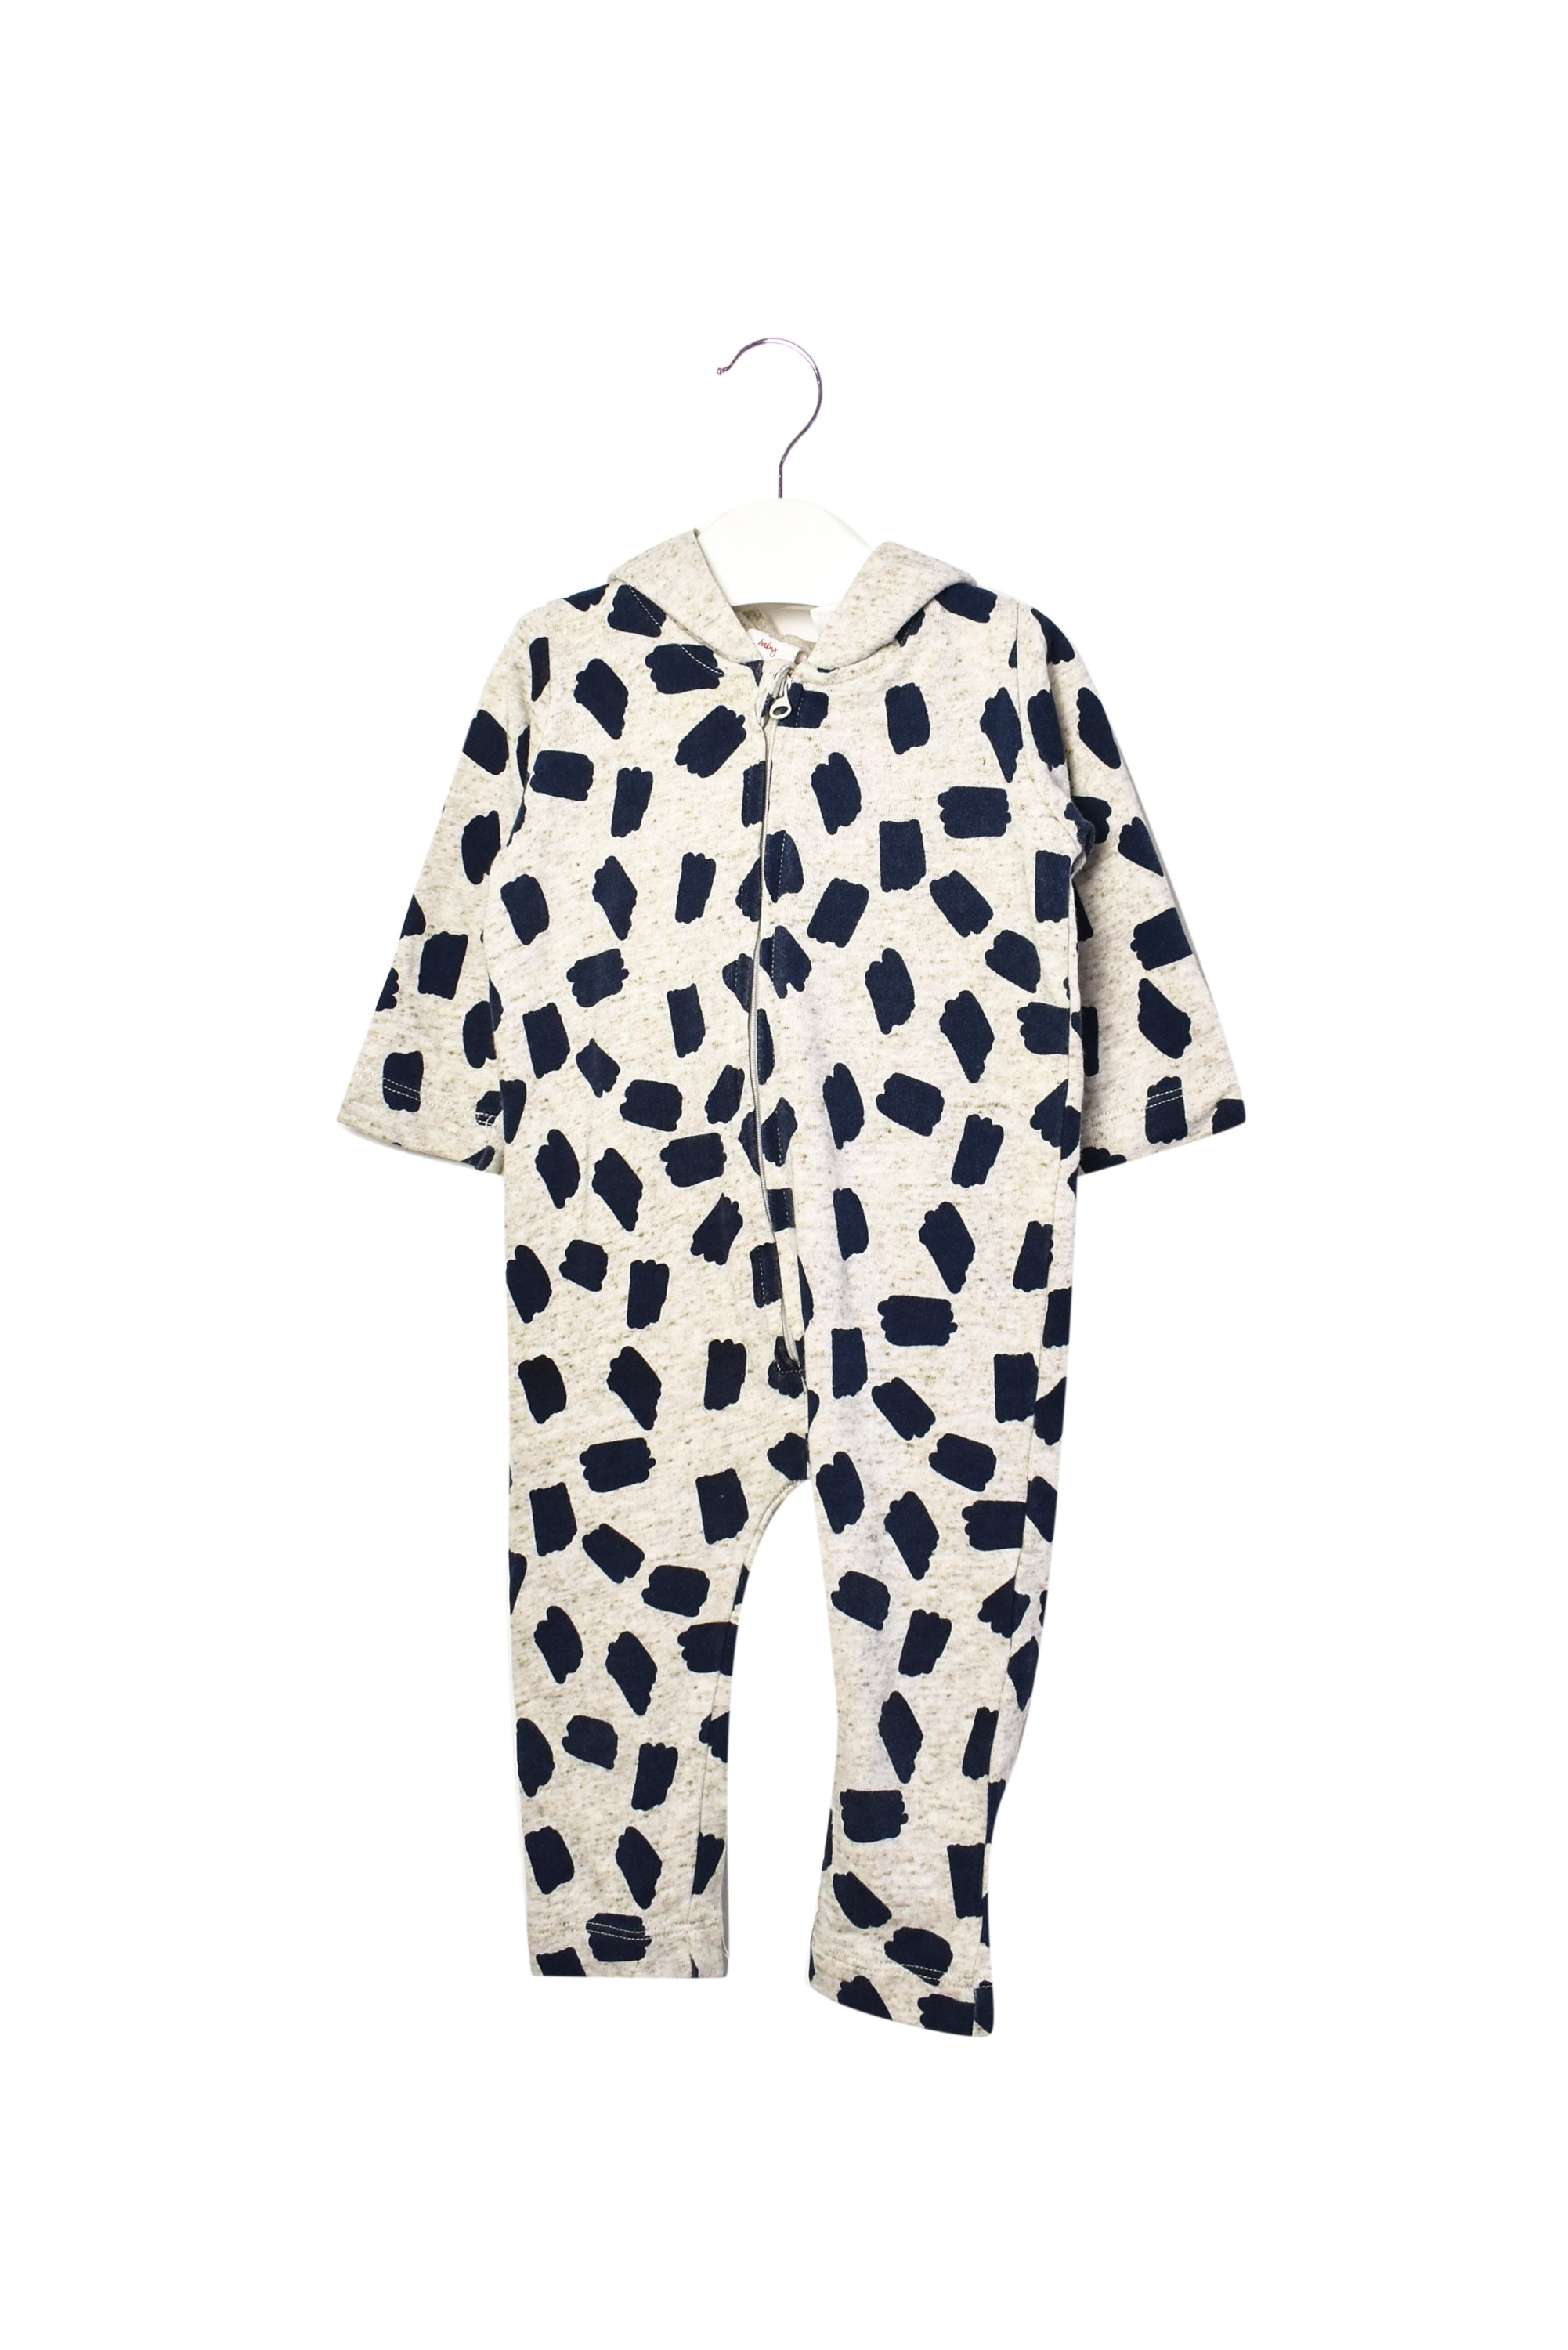 10014493 Seed Baby ~ Jumpsuit 6-12M at Retykle